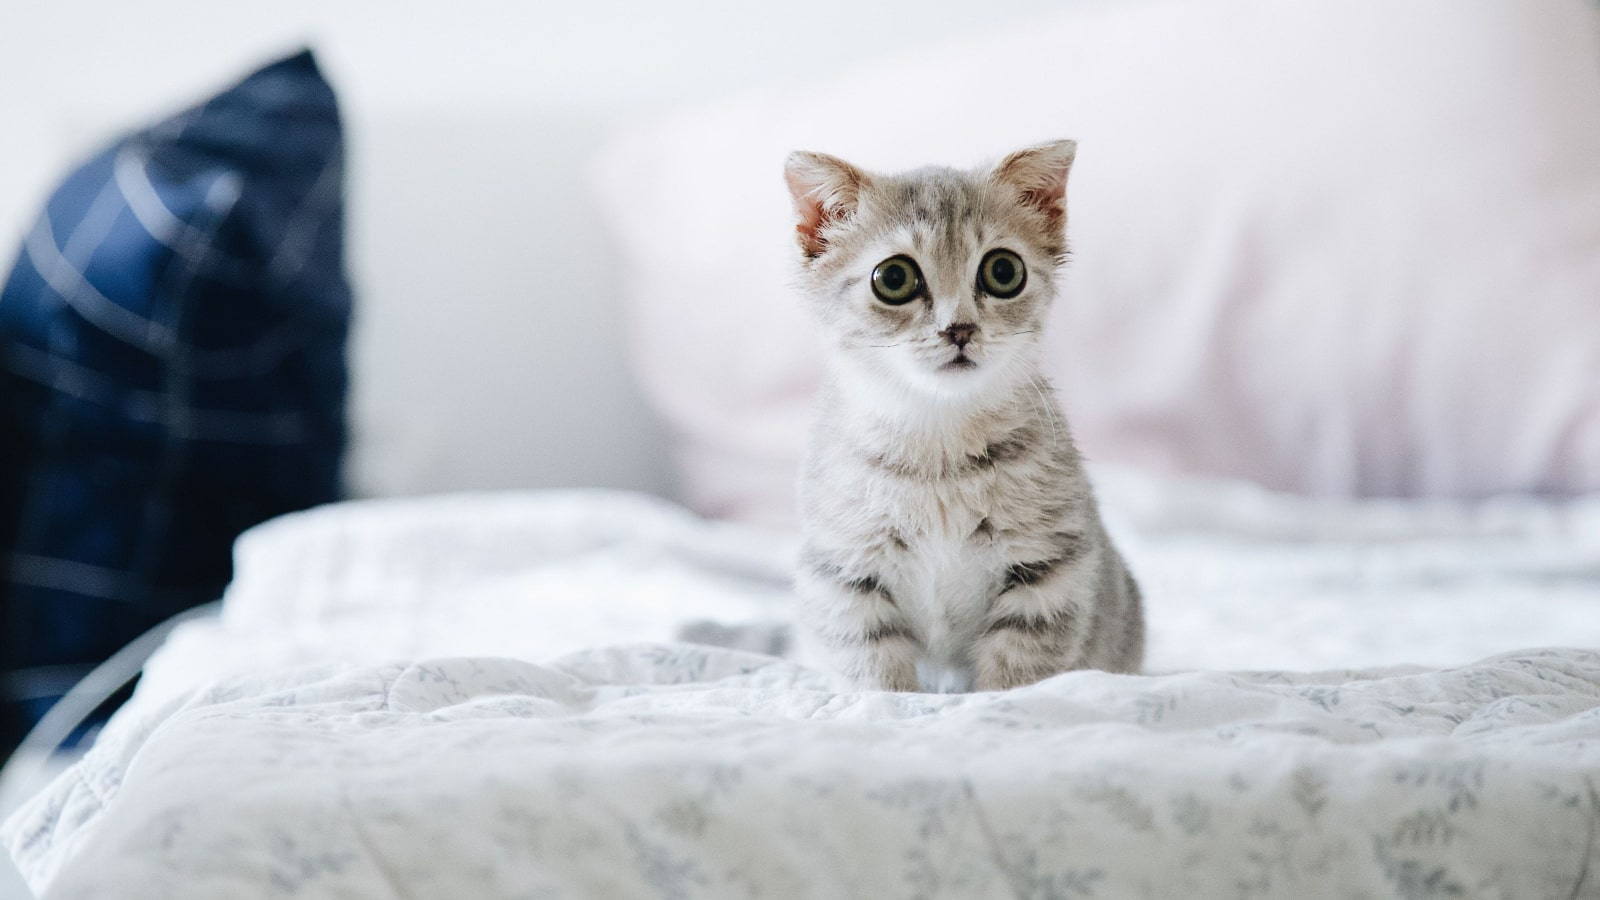 Get To Know The Cutest Cat Breeds On The Planet Suddenly Cat Cute Cat Things For Cute Cat People